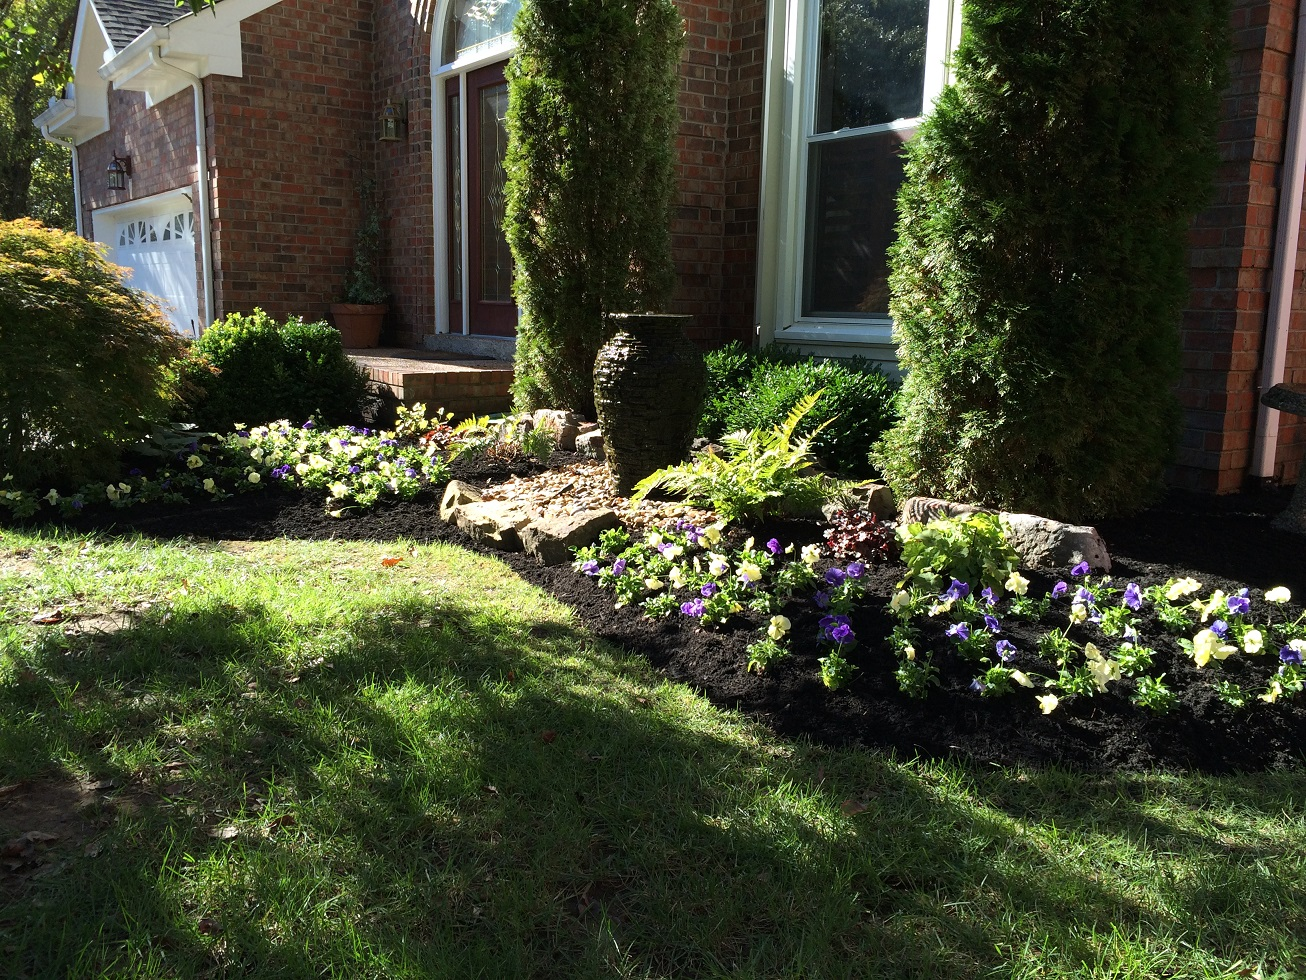 Landscaping and landscaping ideas jvi secret gardens for Garden landscaping ideas